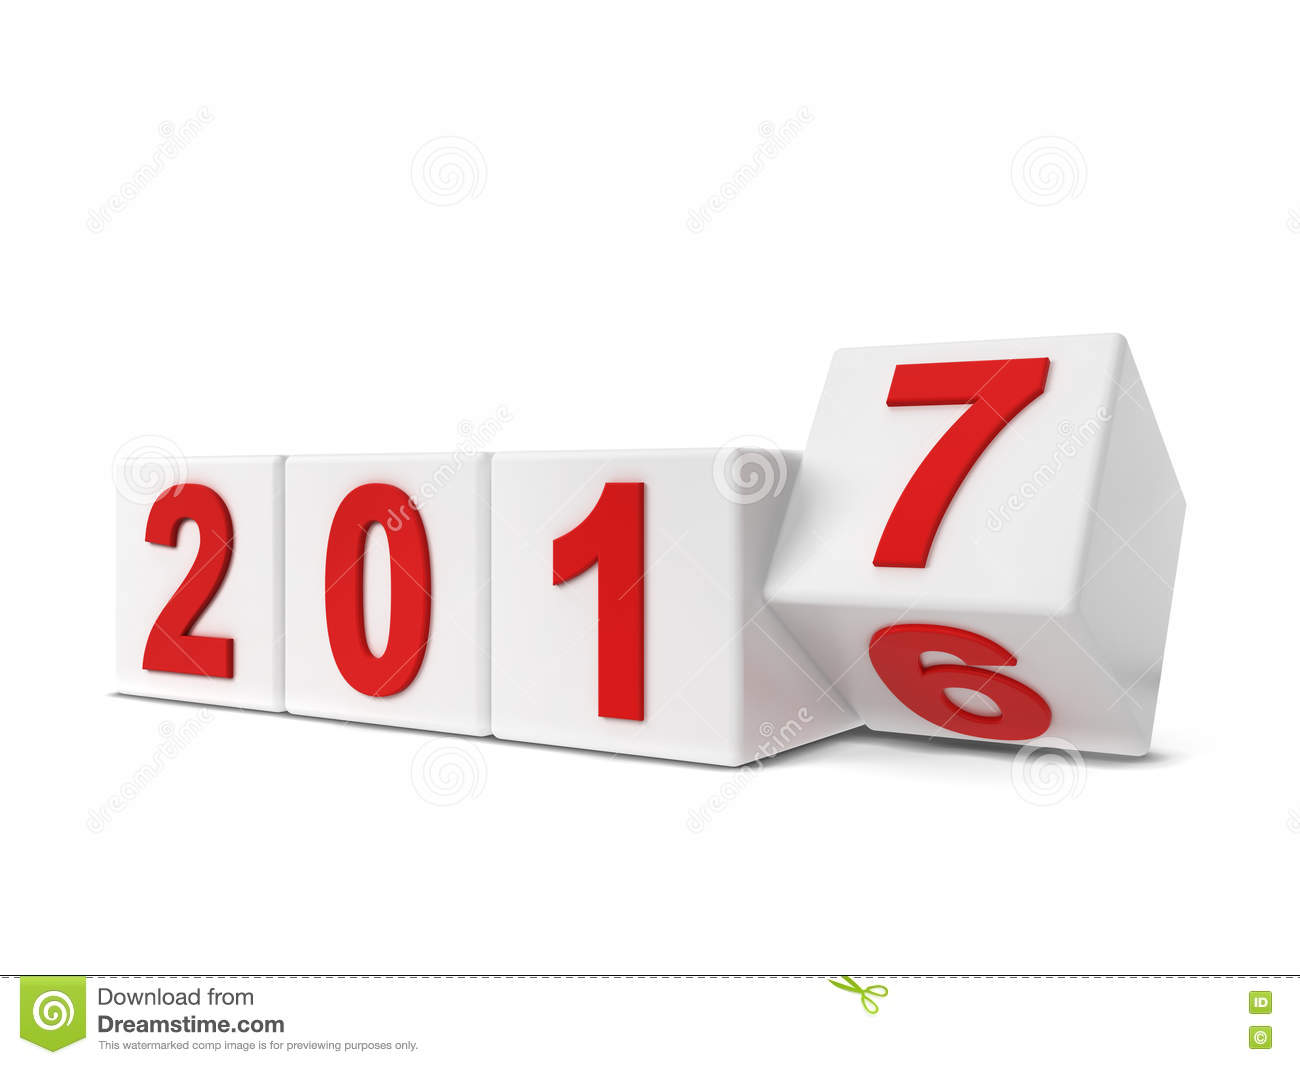 2017 year changing. 3d illustration isolated on white background